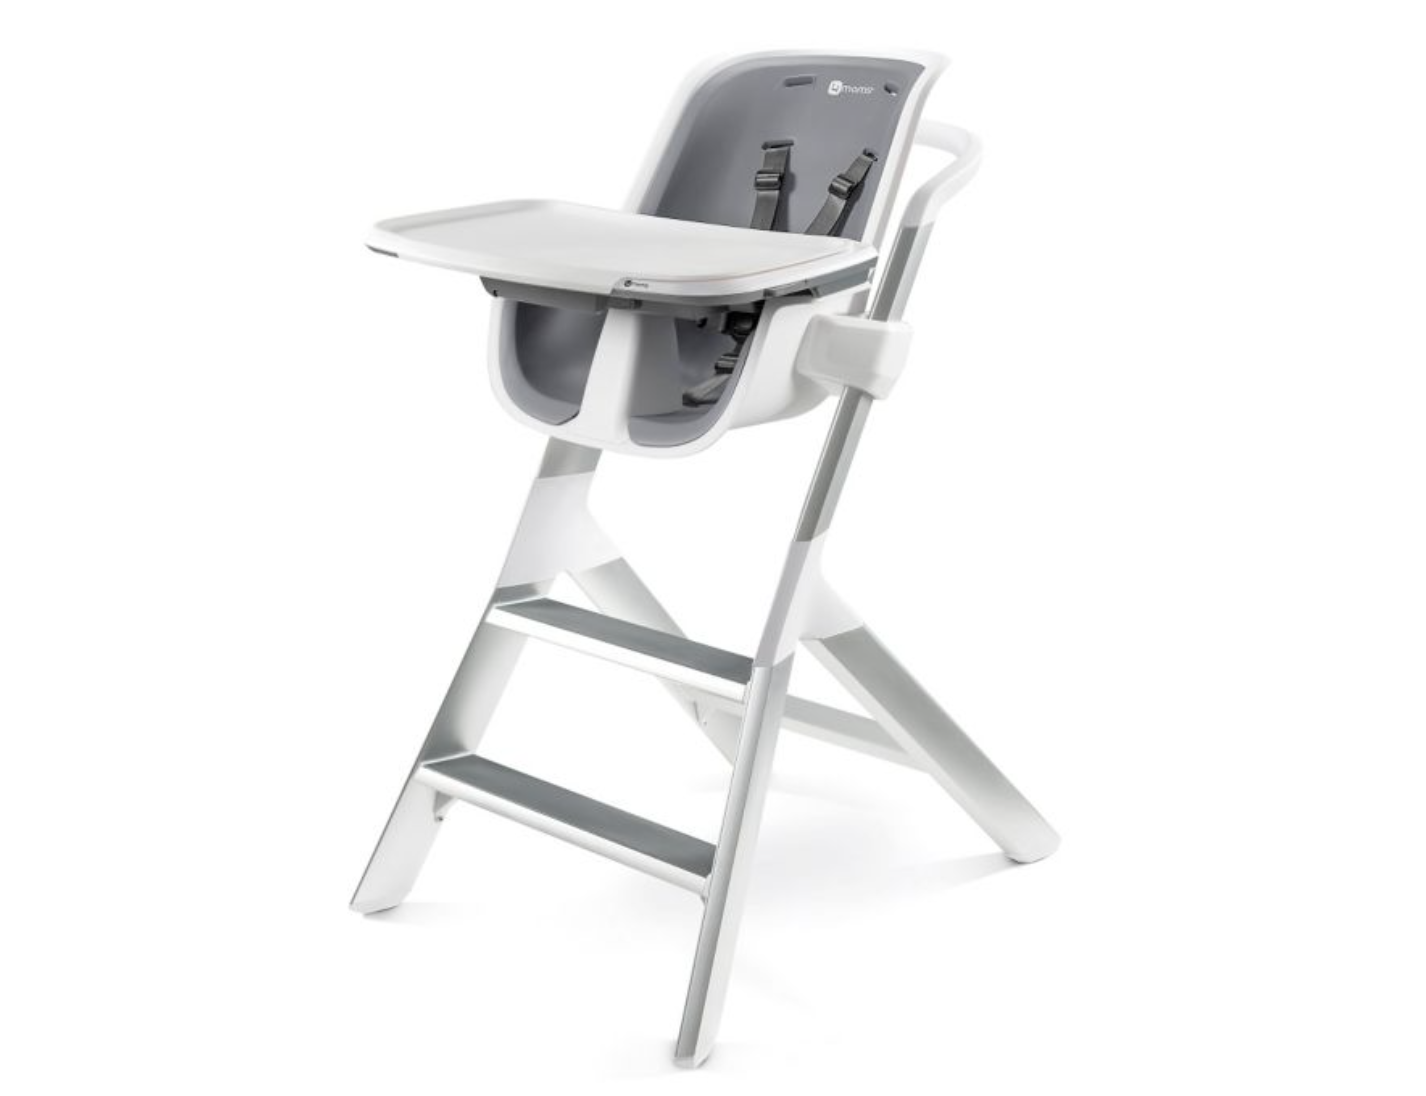 4MOMS HIGH CHAIR - Again, I have a very expensive highchair that I used with Luca and got this one for Leo and have loved it! It has a magnetic tray and super easy to clean.